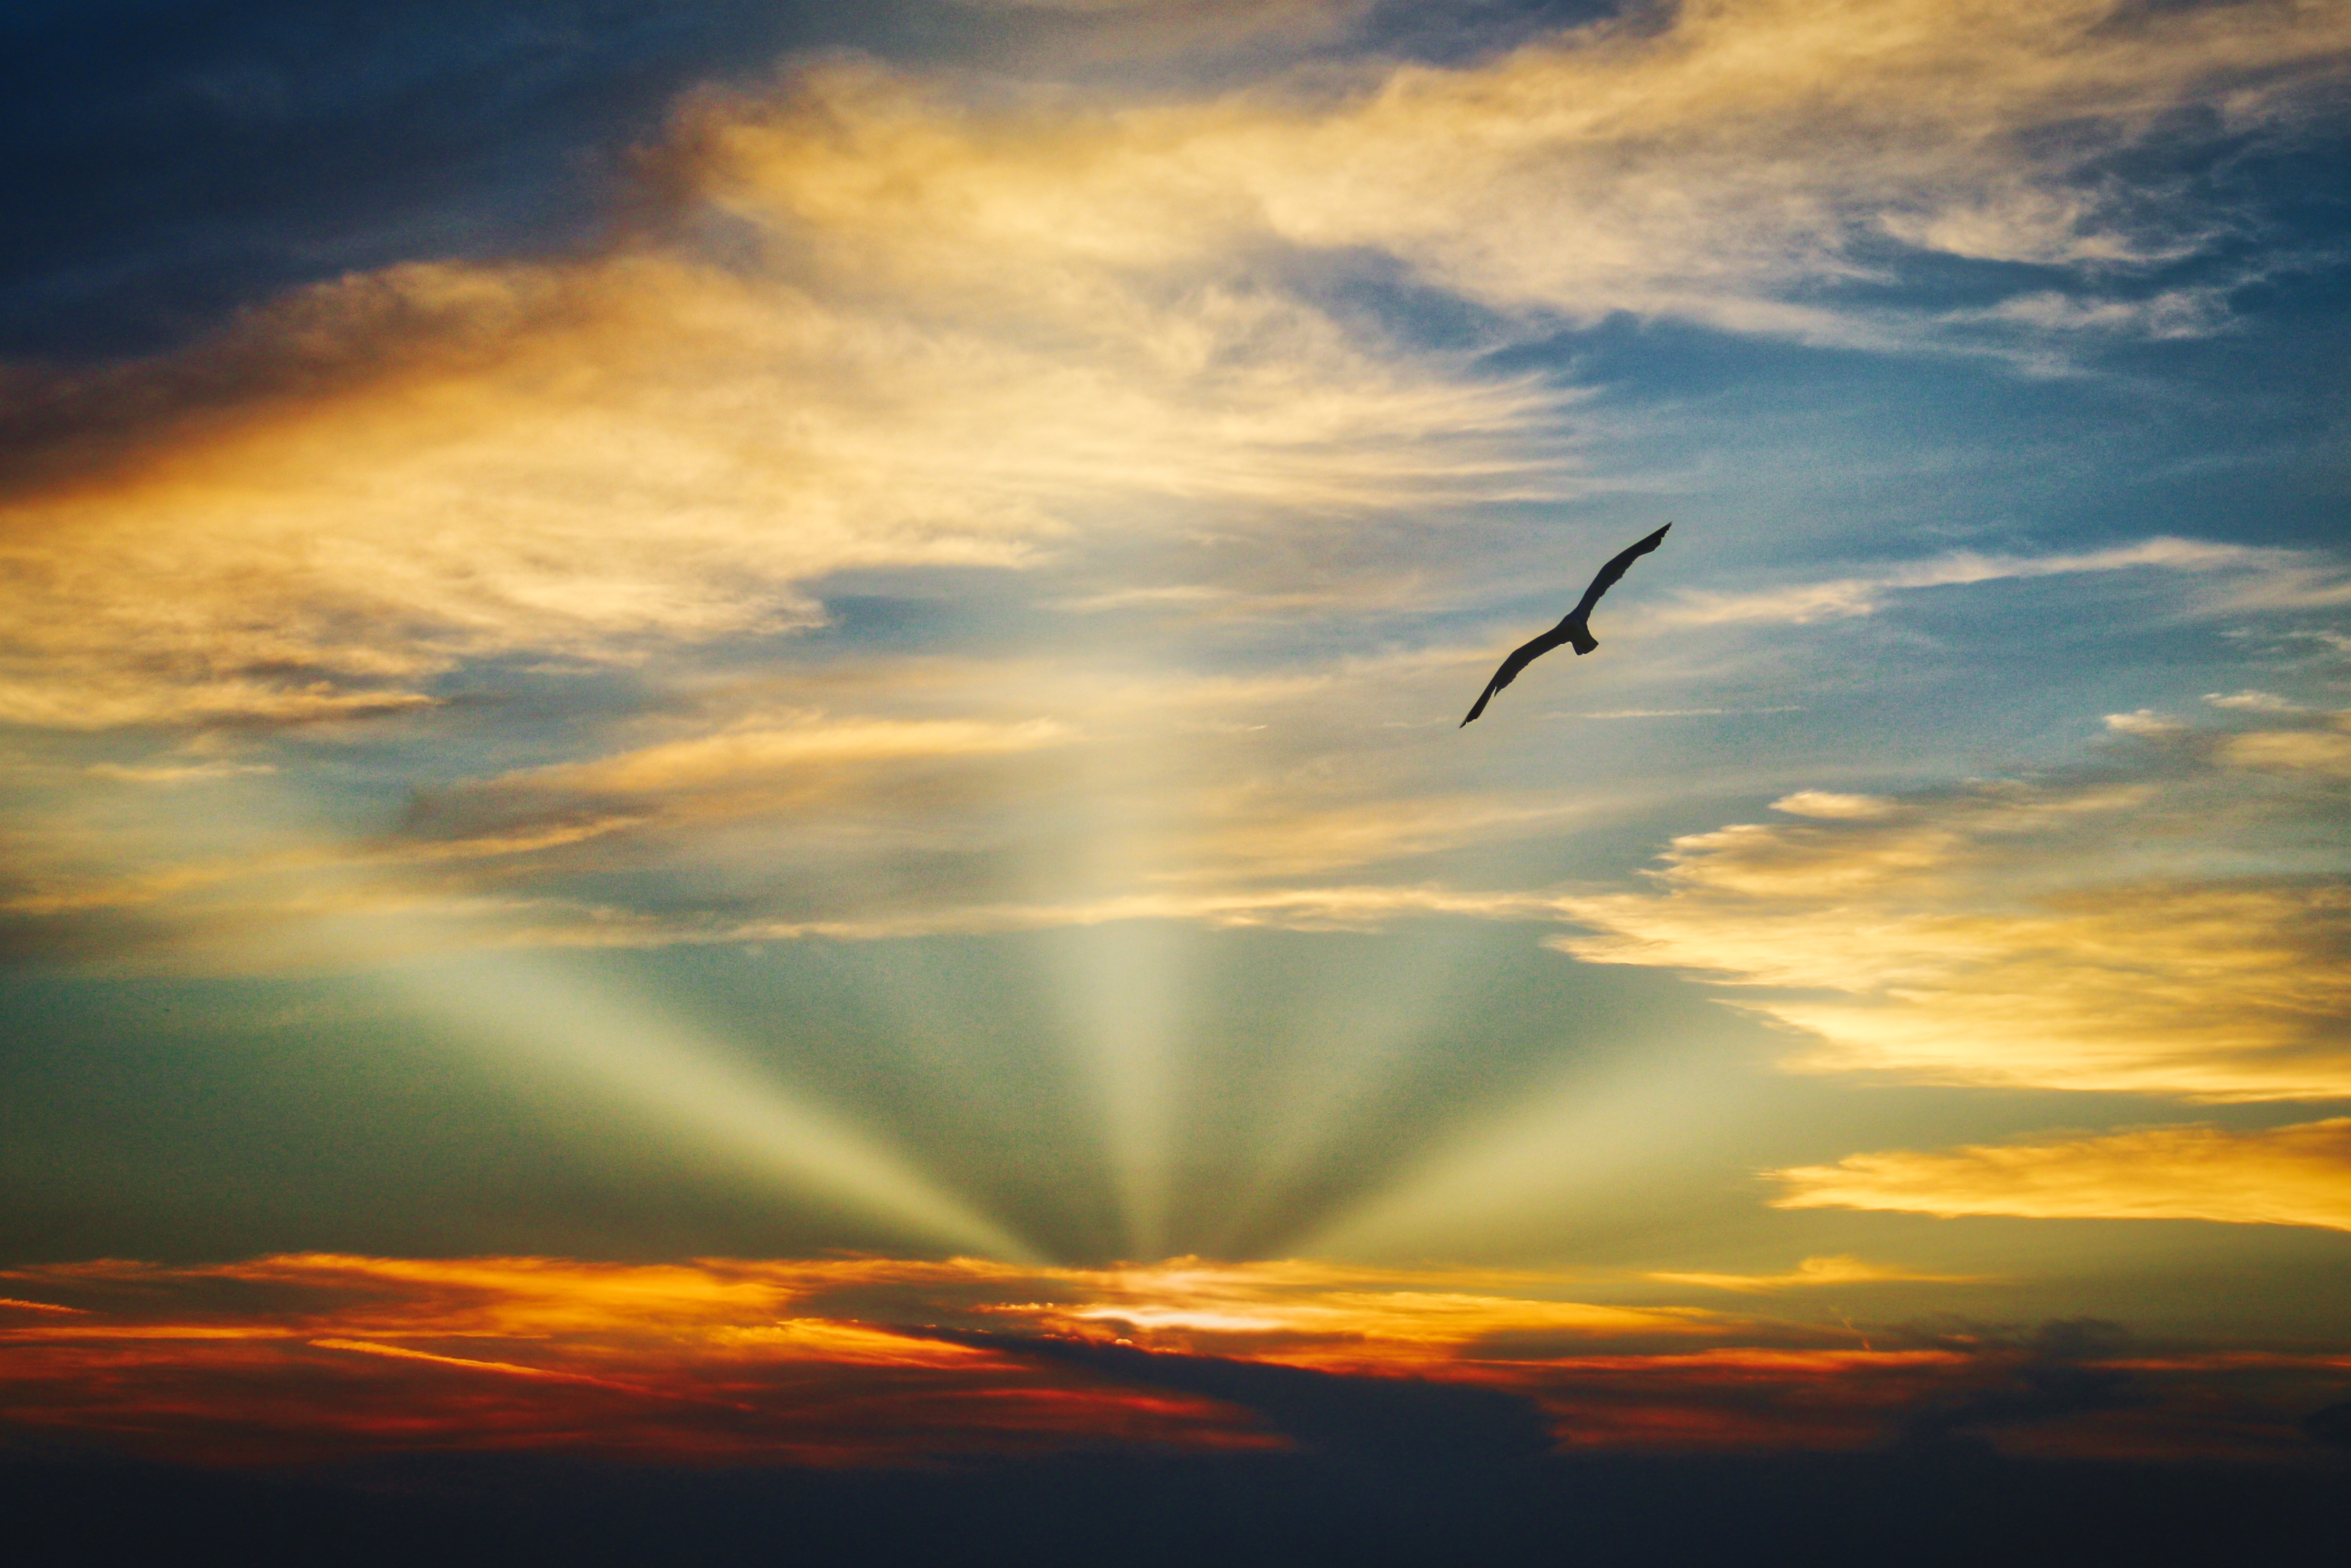 Wallpaper Clouds Blue Sky Hd 5k Nature 3492: Bird Flying Sunset Evening View Clouds Beautiful Sky 5k